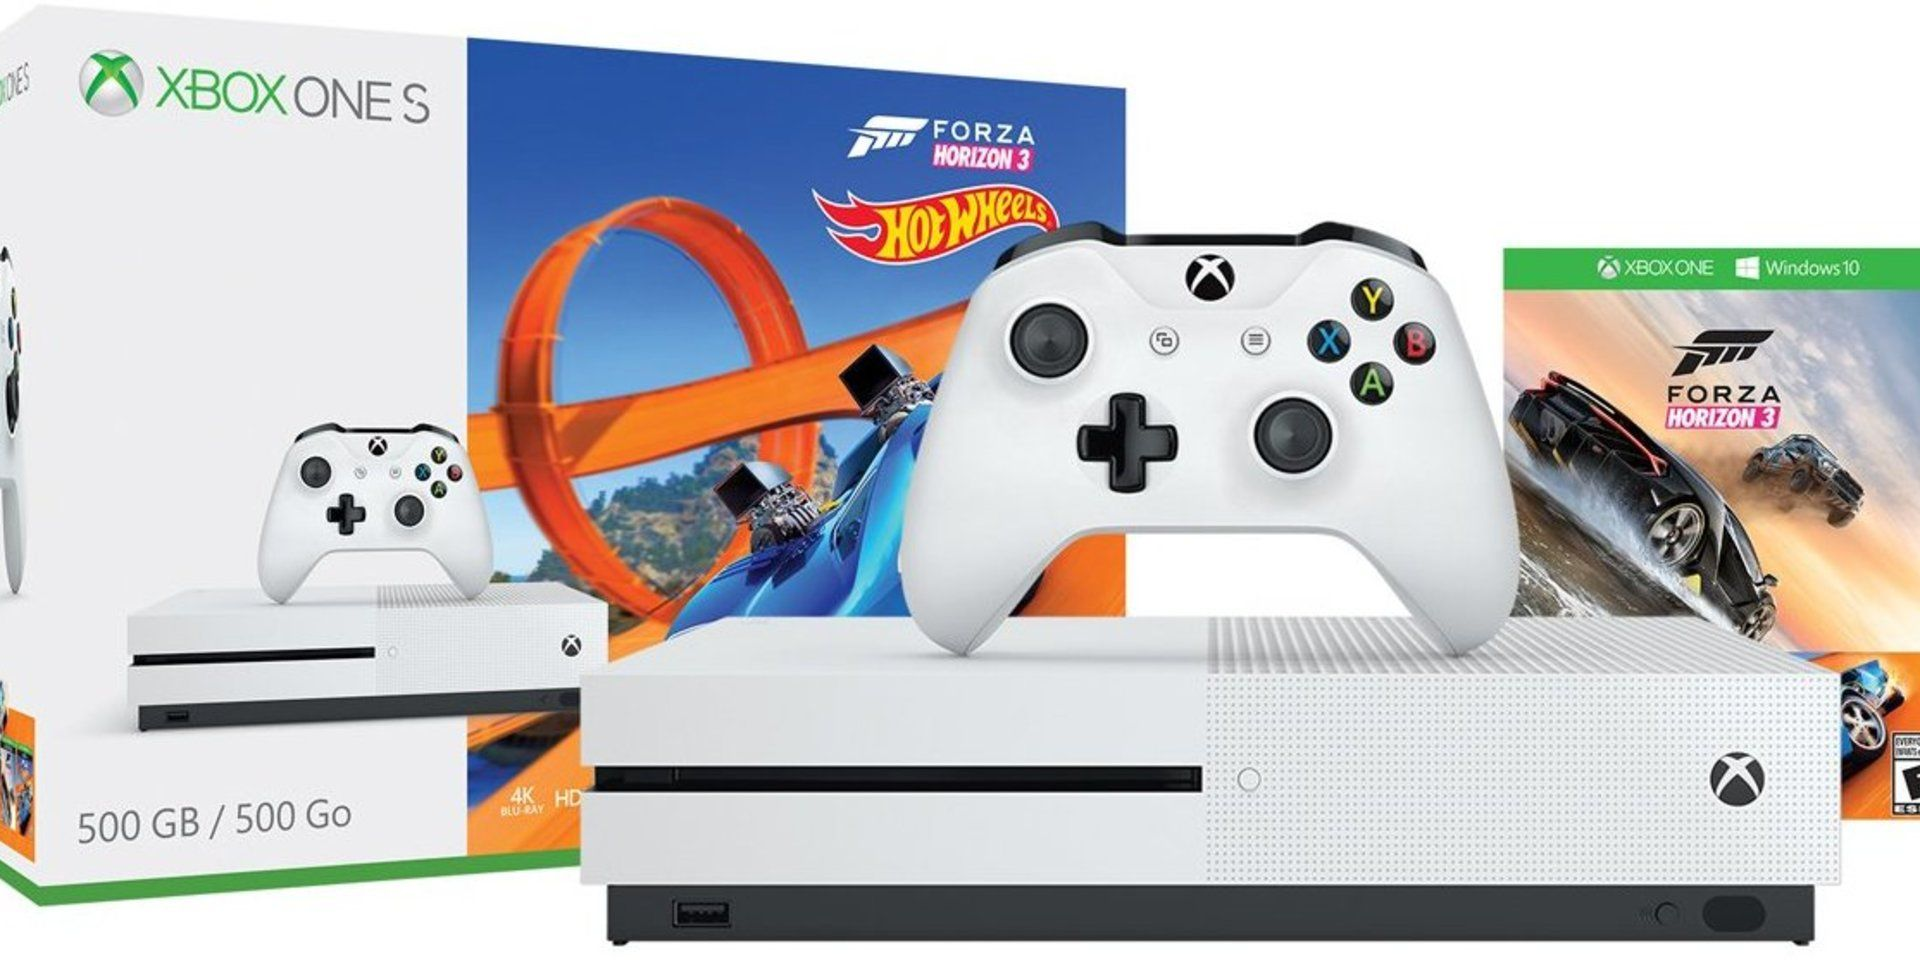 Console Xbox One S - 500 Gb + HDR + 4K Streaming + Jogo Forza Horizon 3 + Jogo Hot Wheels